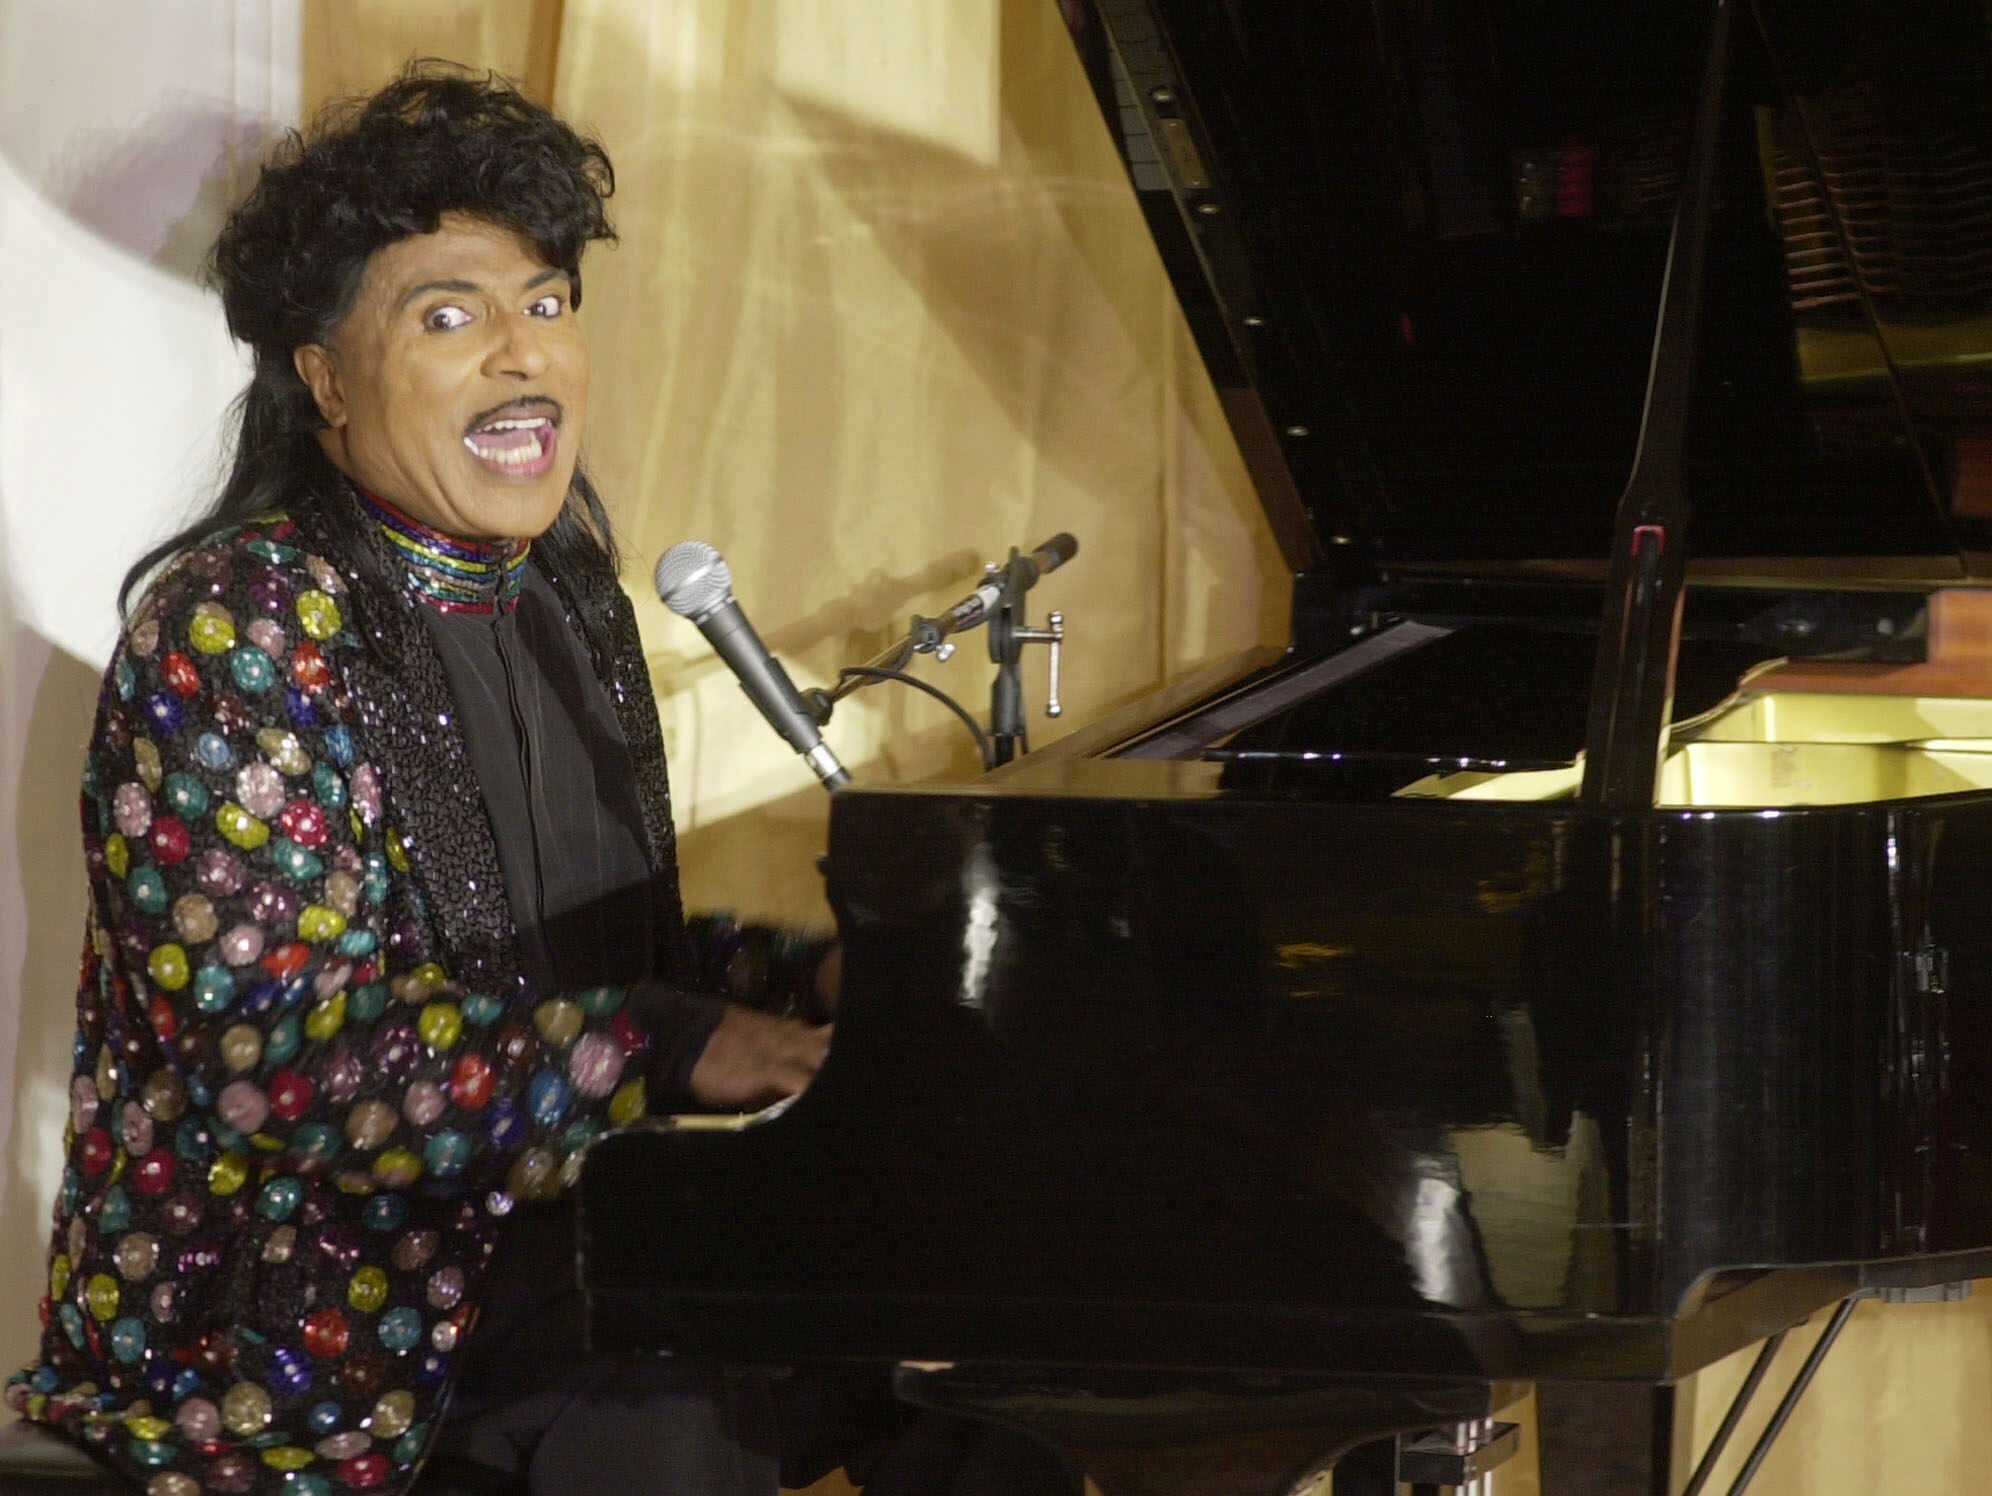 Little Richard performs at the 93rd birthday and 88th year in show business gala celebration for Milton Berle, in Beverly Hills, Calif. Little Richard, the self-proclaimed u201carchitect of rock u2018nu2019 rollu201d whose piercing wail, pounding piano and towering pompadour irrevocably altered popular music while introducing black R&B to white America, has died Saturday, May 9, 2020. File Photo: AP